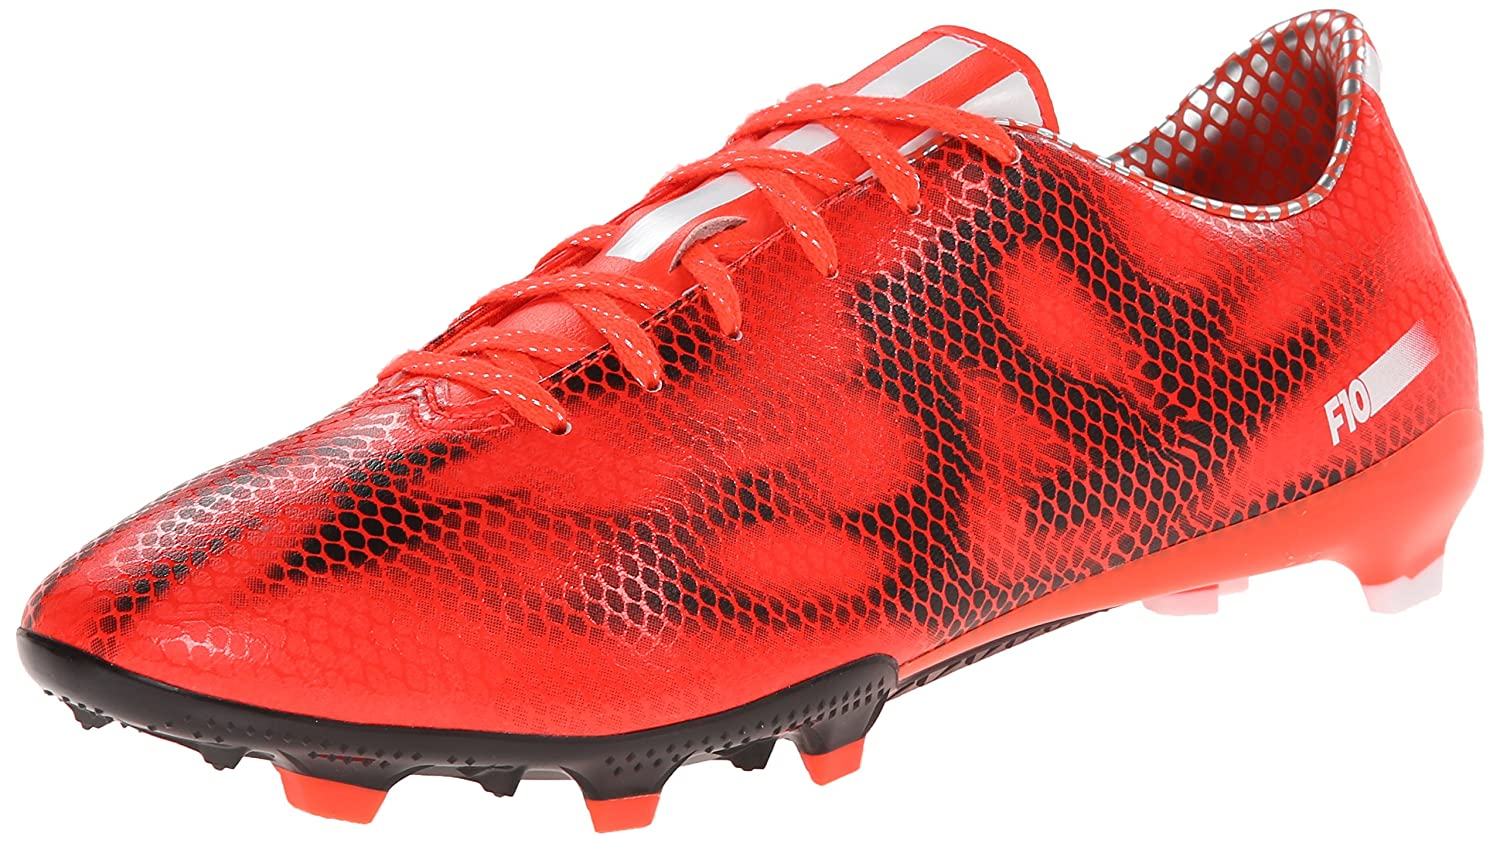 adidas Performance Men's F10 Firm-Ground Soccer Cleat